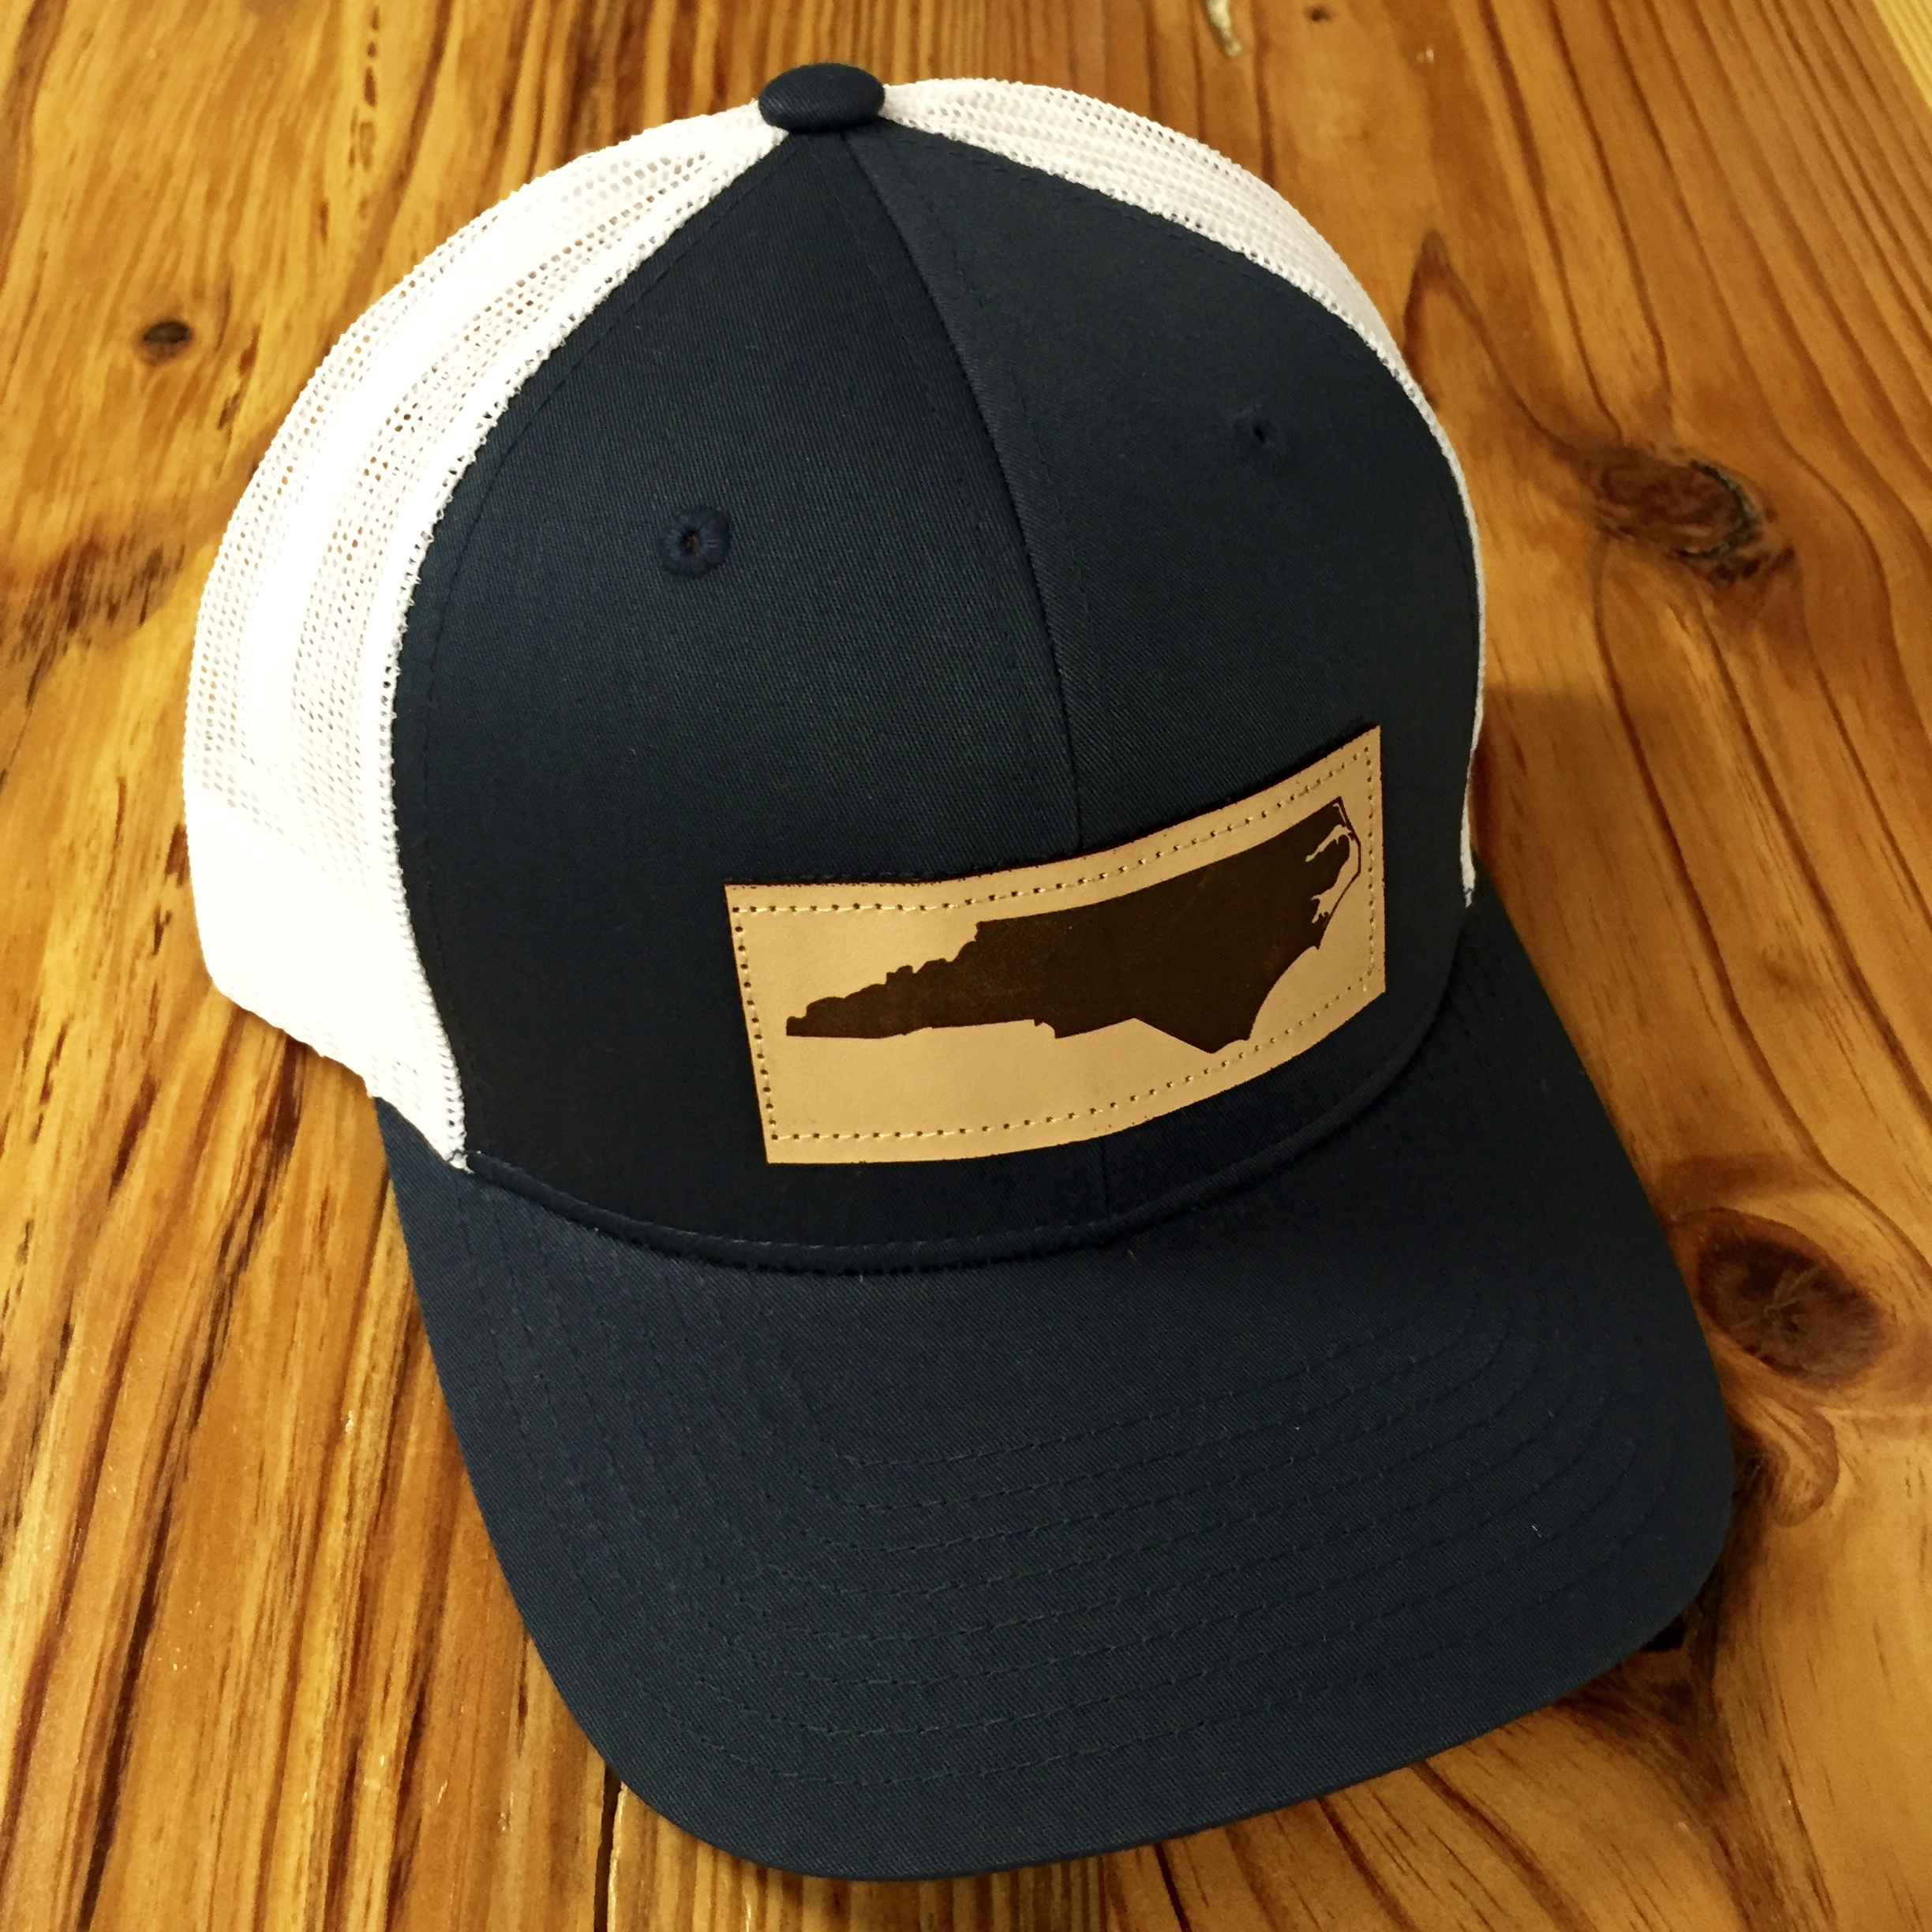 2c5f87b0ea5 Captuer Mesh Back North Carolina Leather Patch Trucker Hat Navy White  Accessories